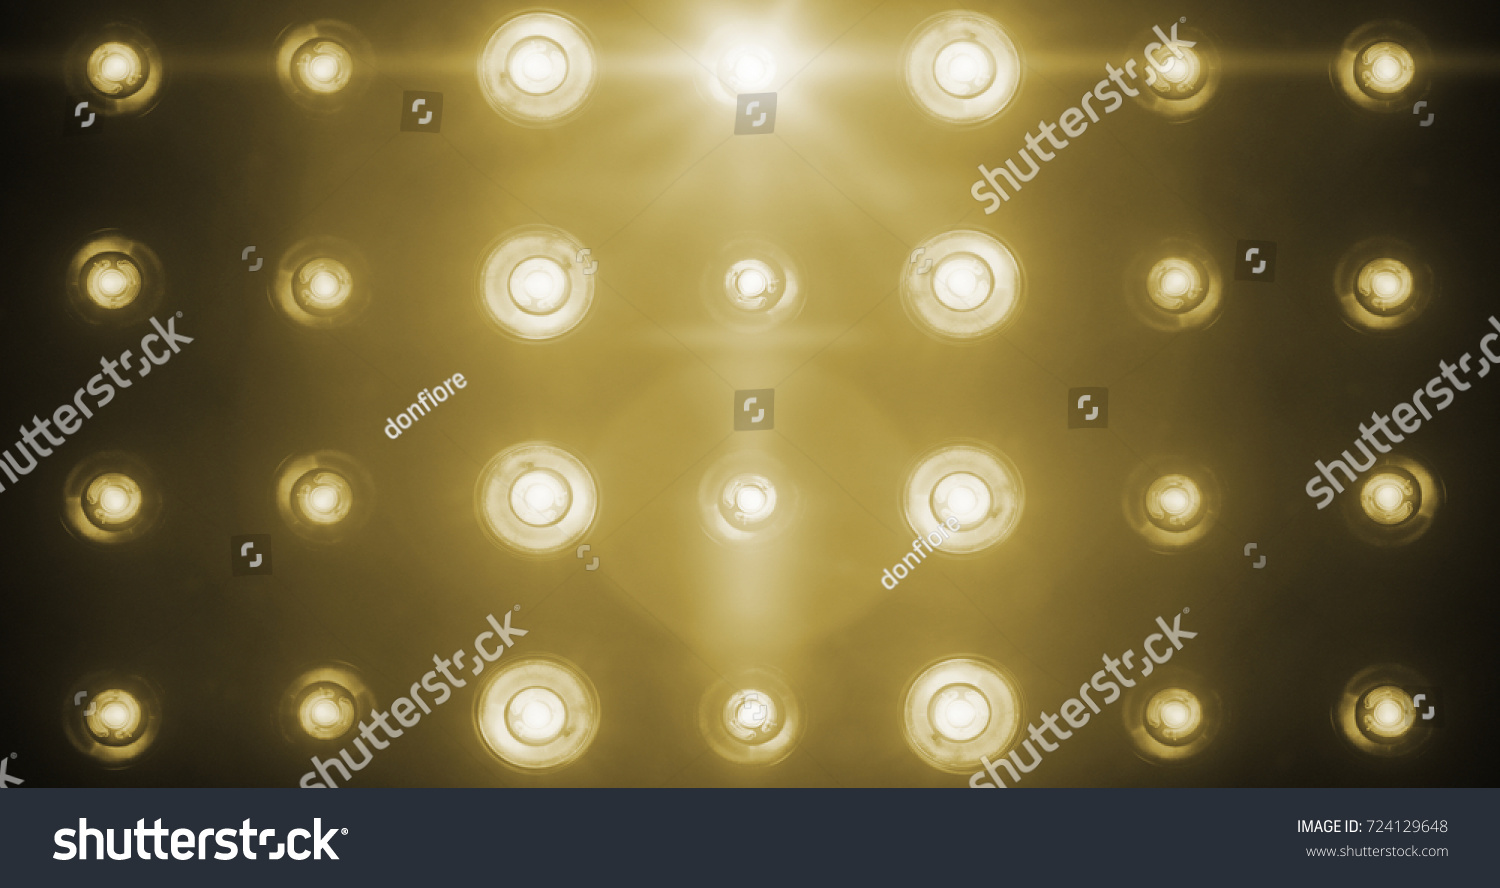 Flashing Shiny Golden Stage Lights Entertainment Spotlight Projectors In The Dark Gold Warm Soft